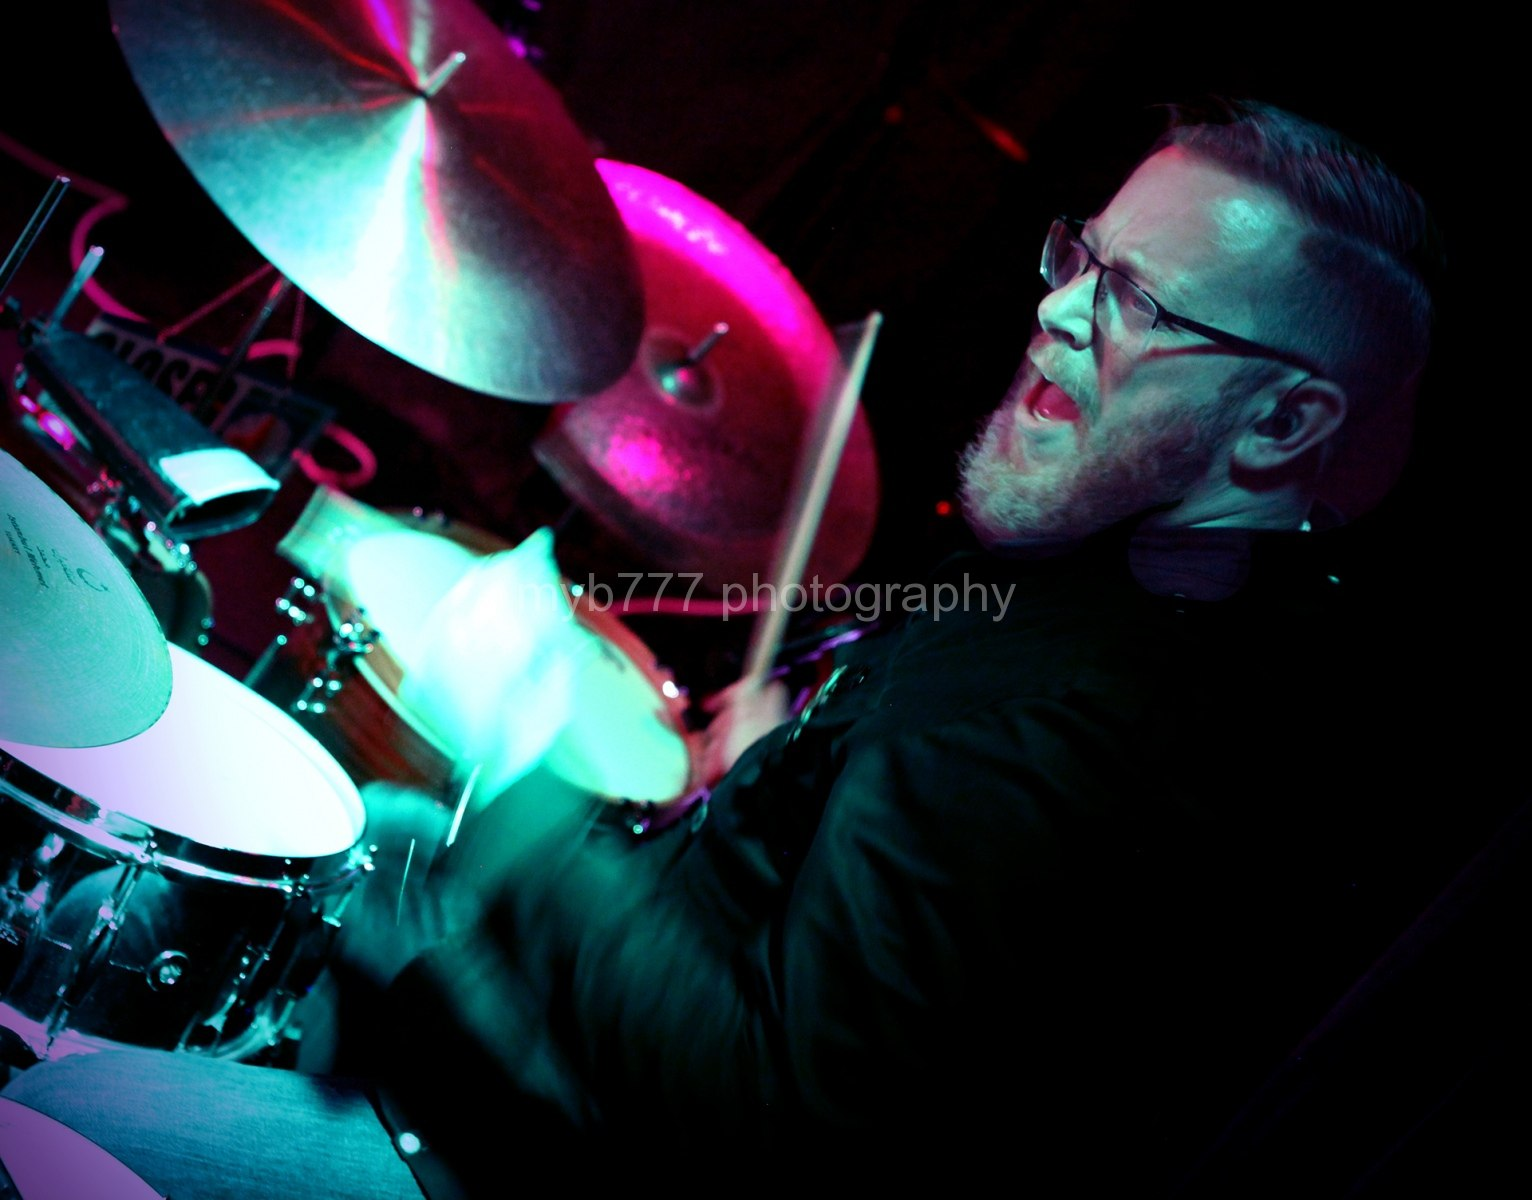 Drummer-Photography-by-myb777-23